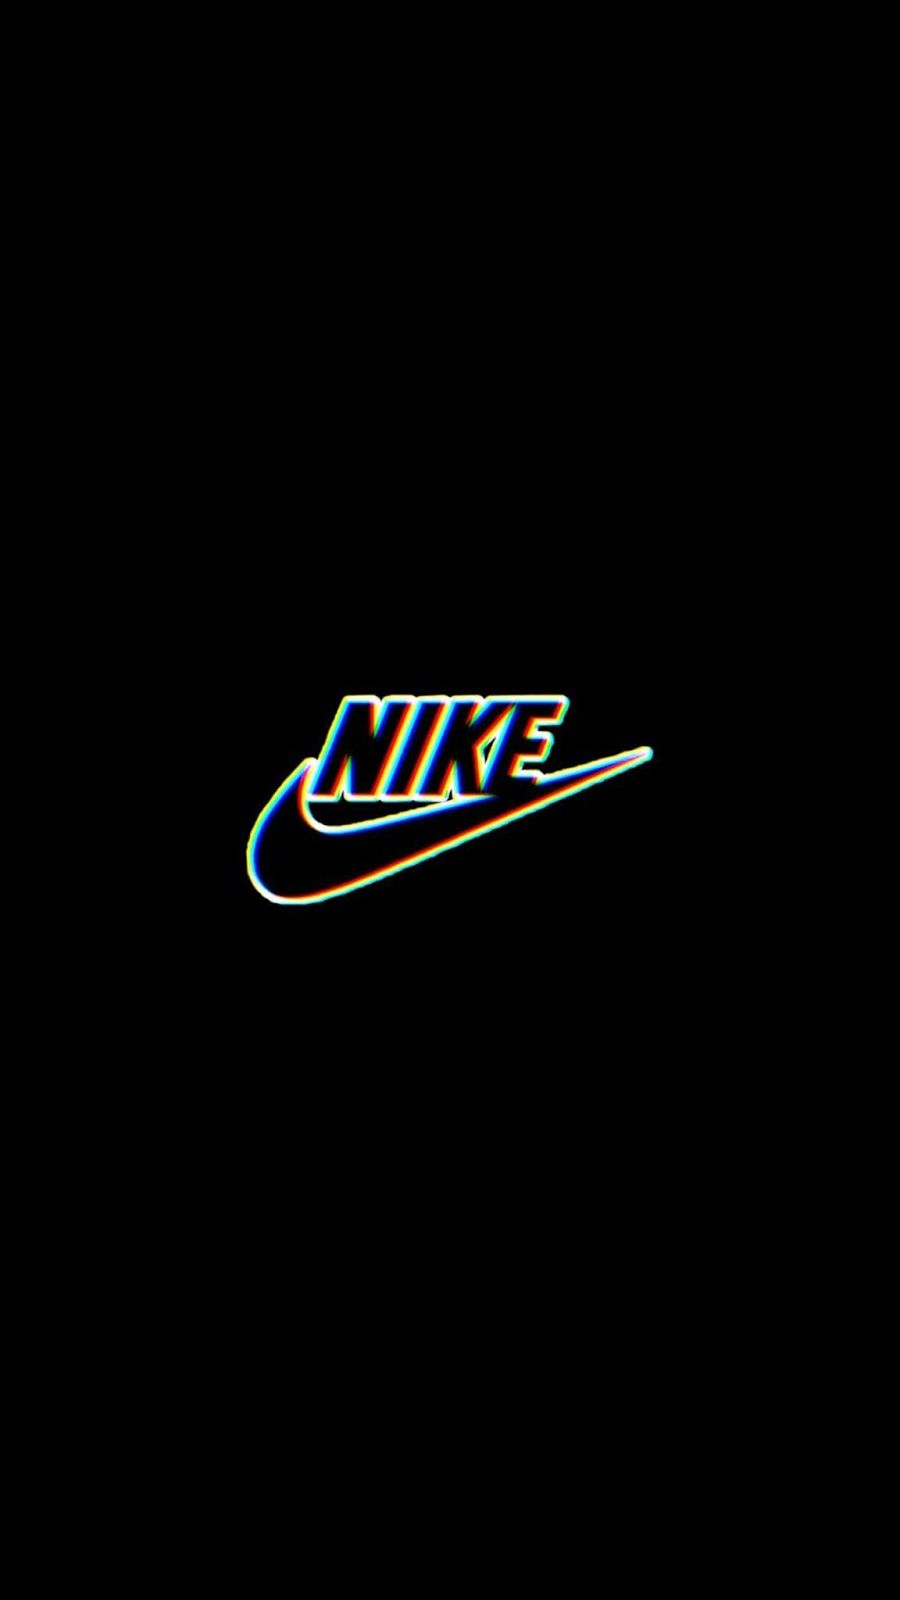 Nike Logo Hd Wallpapers For Iphone X Iphone Xr Iphone 11 Etc In Glitch Wallpaper Nike Logo Wallpapers Edgy Wallpaper